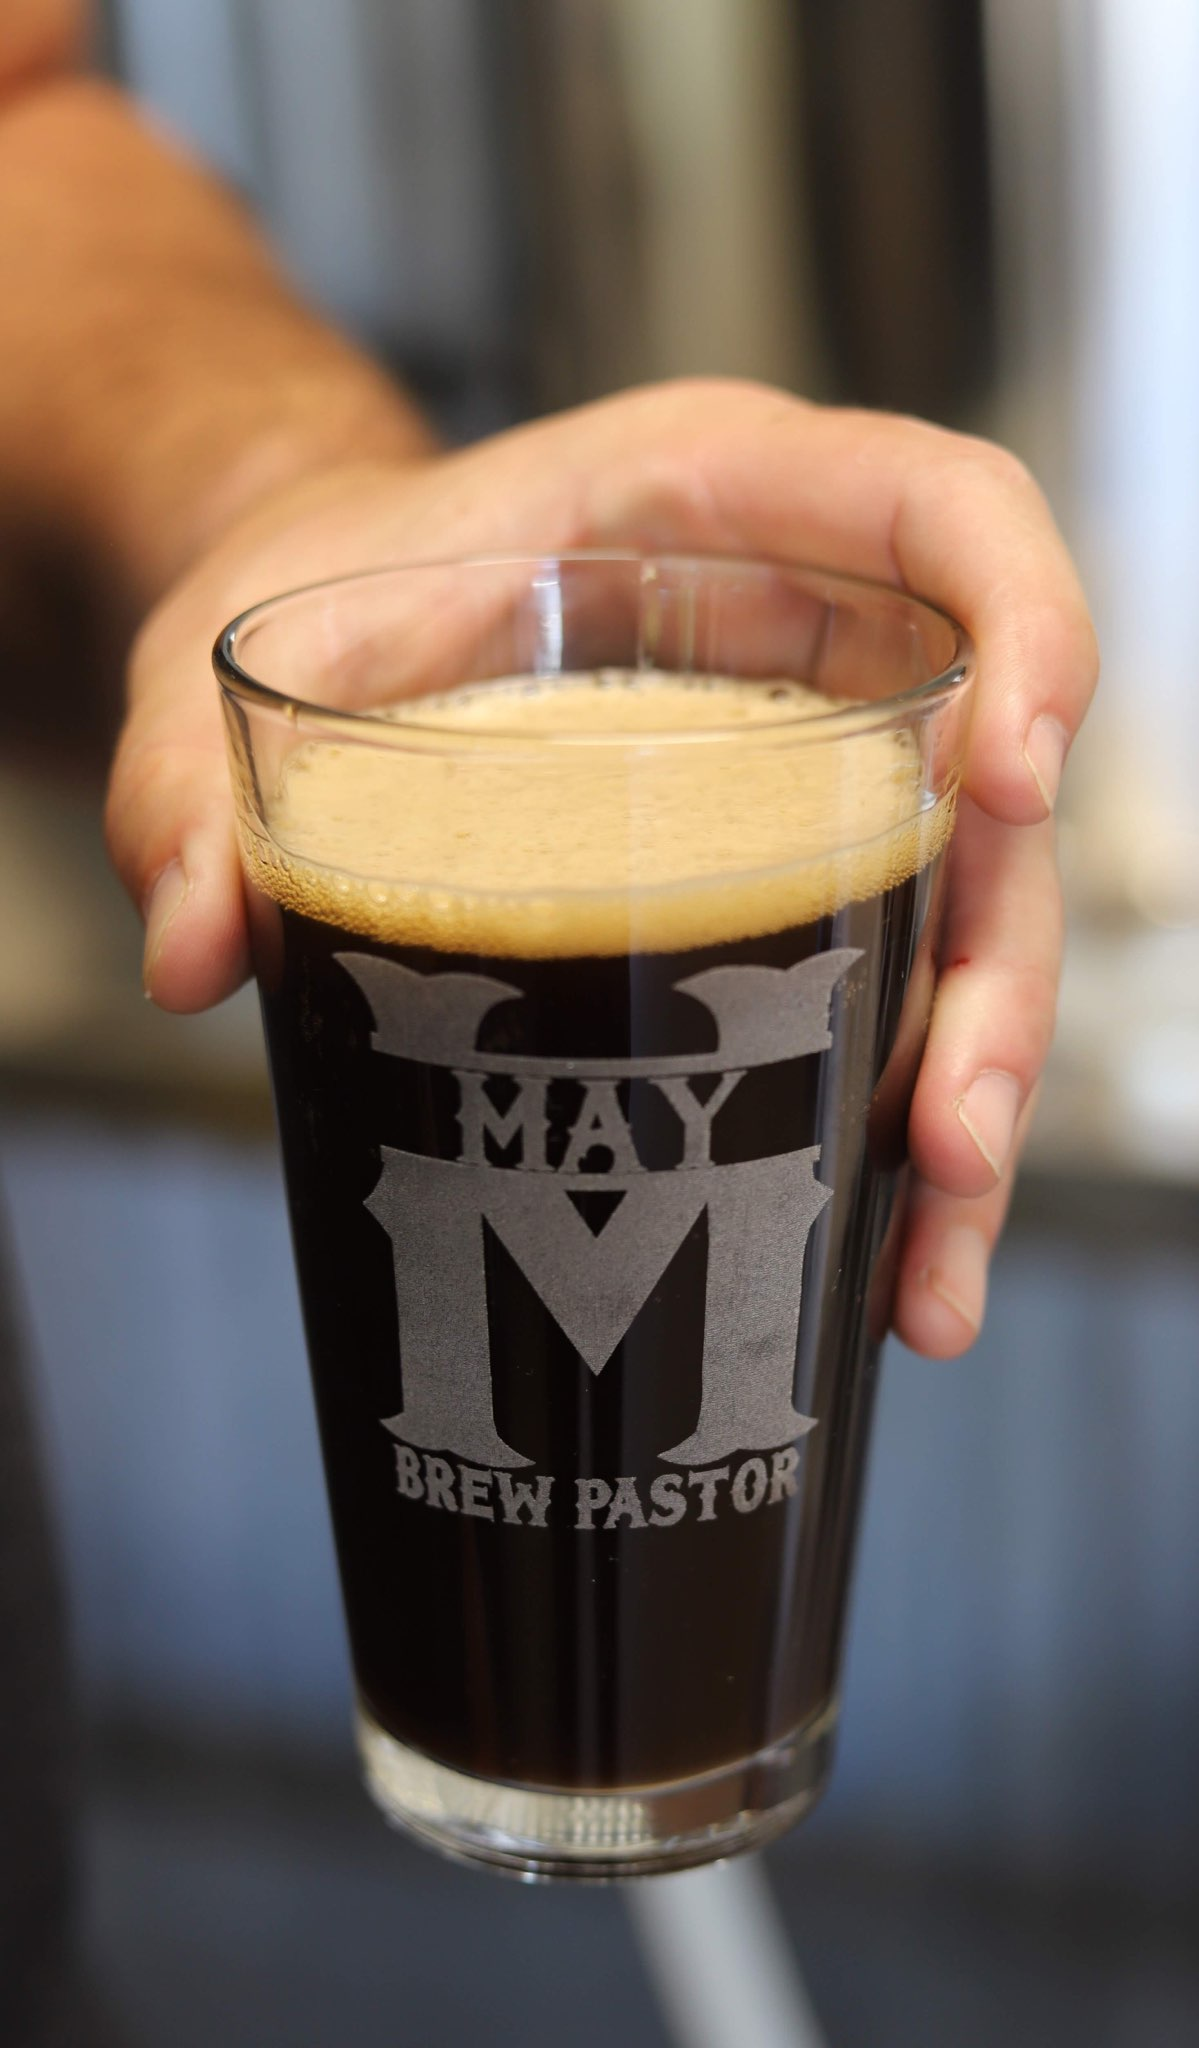 May Brew Pastor glass